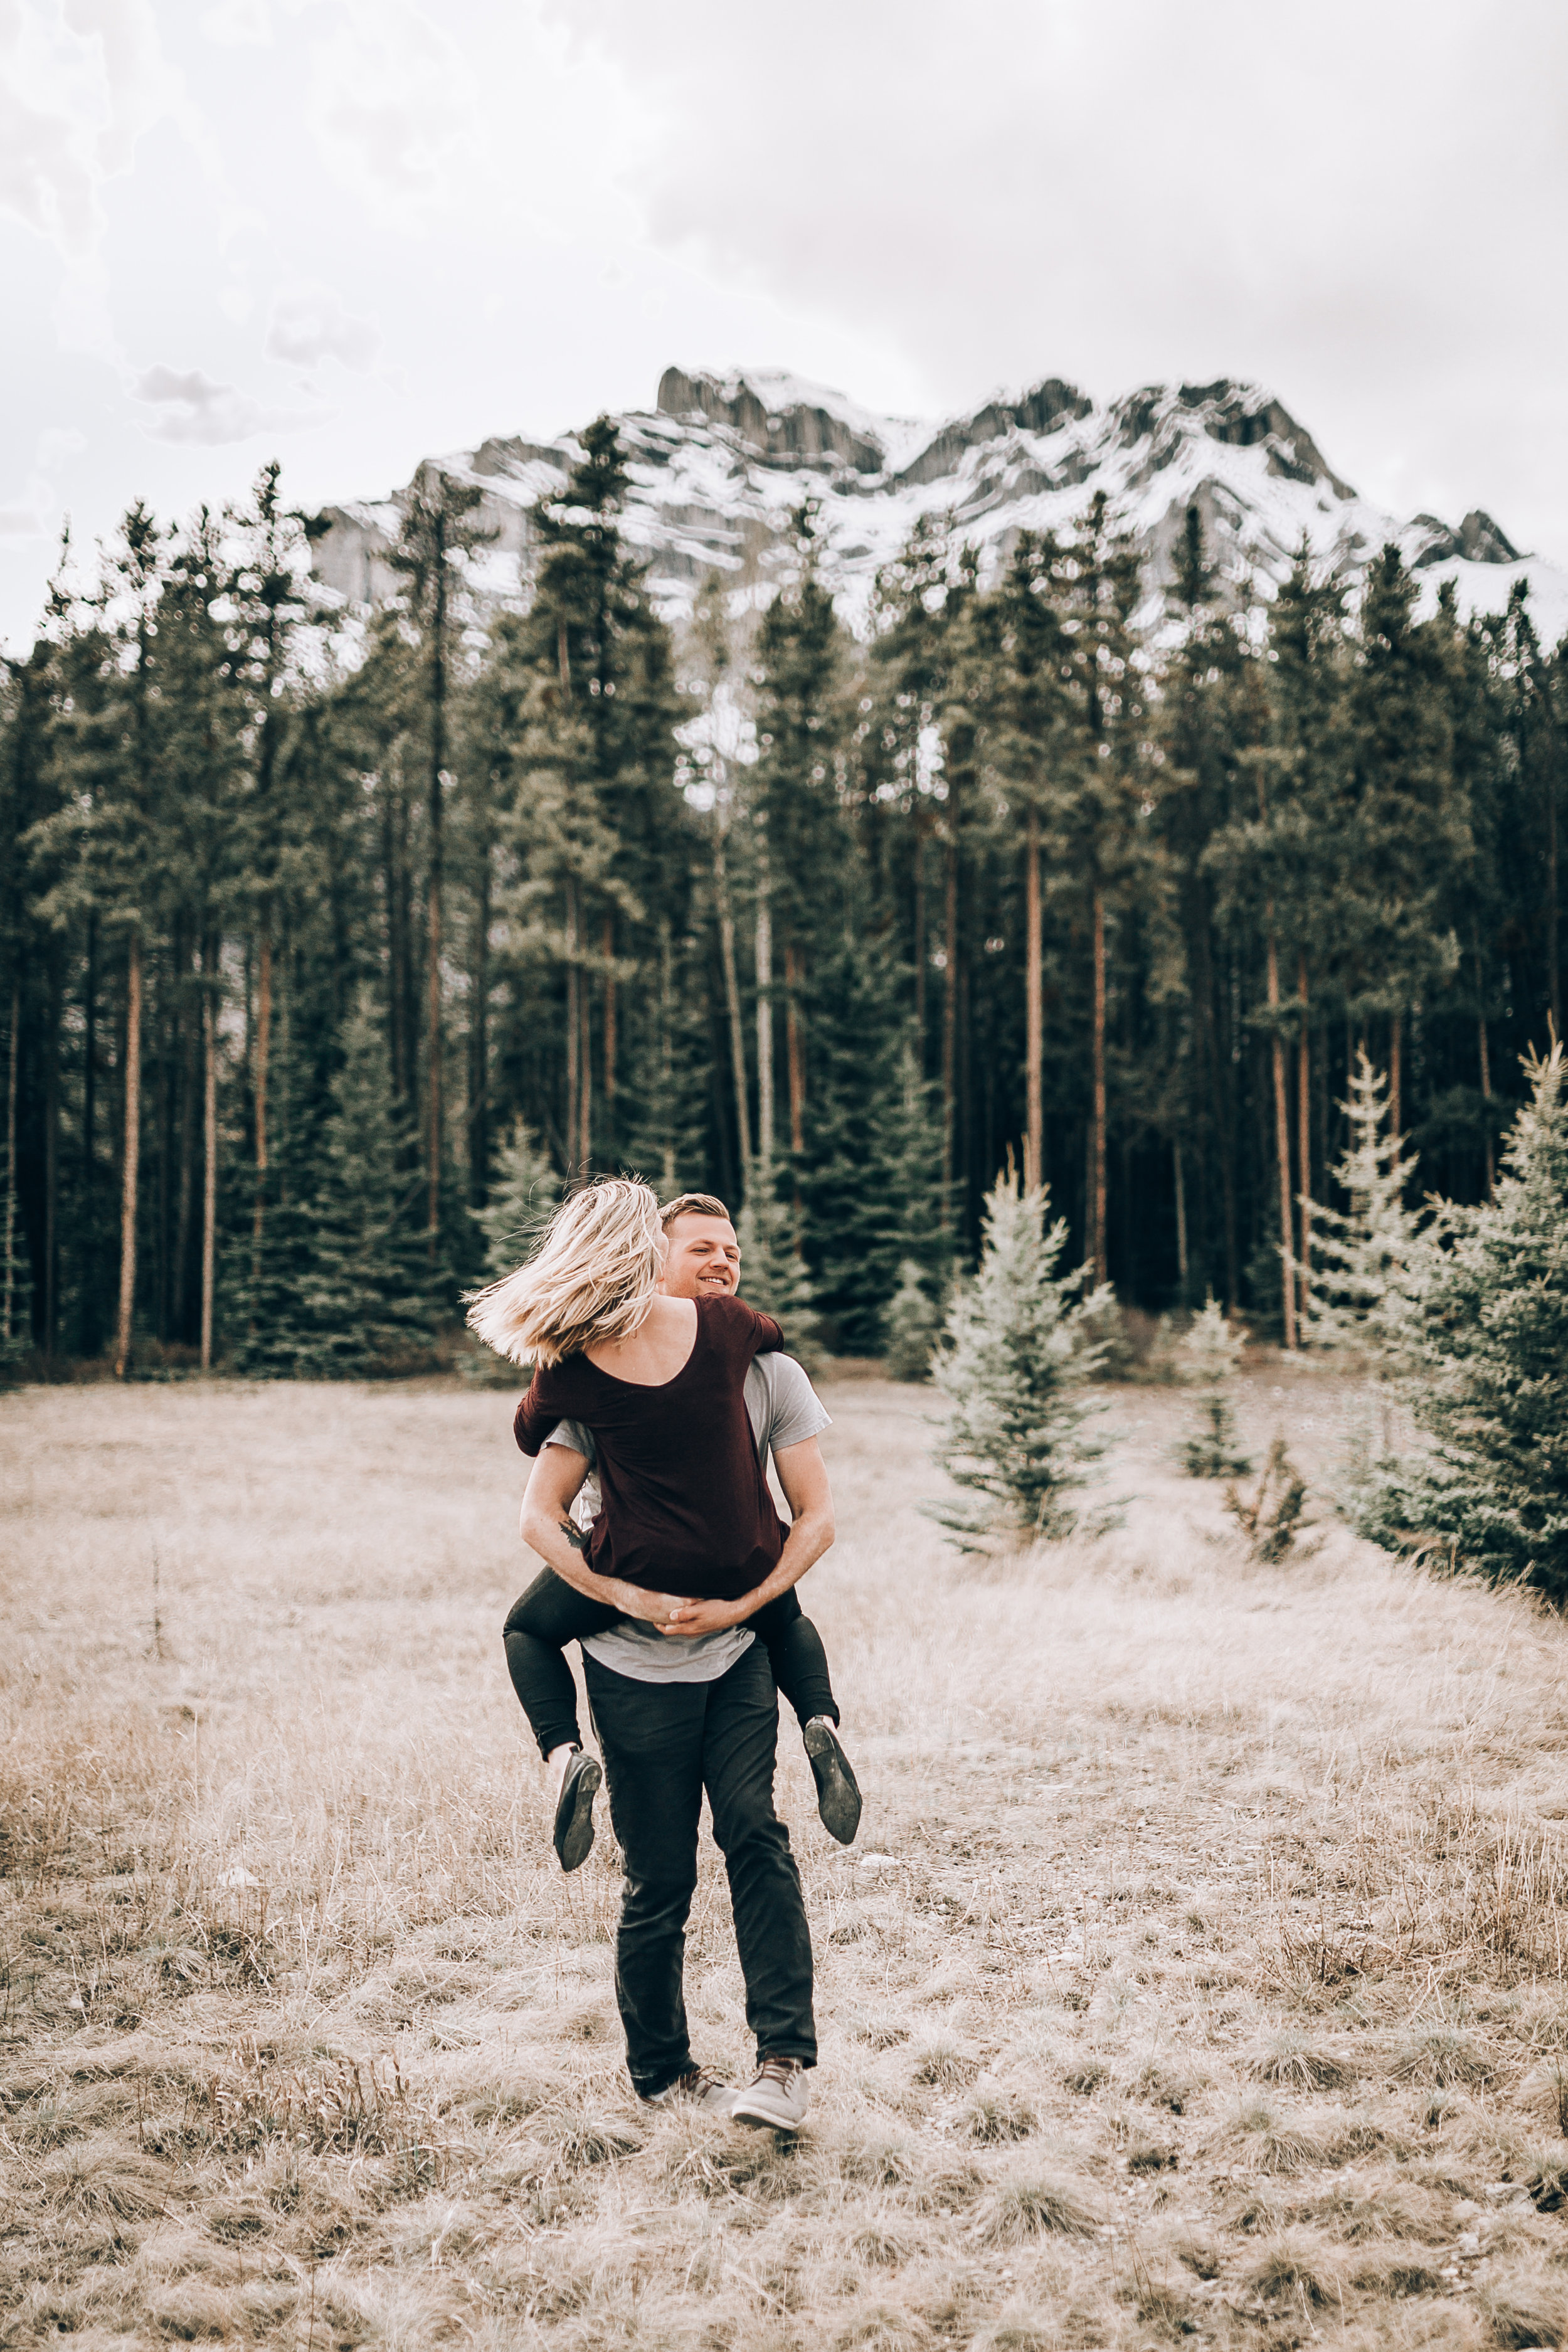 simpleperfectionsphotography.cullen+chelsey-6.jpg